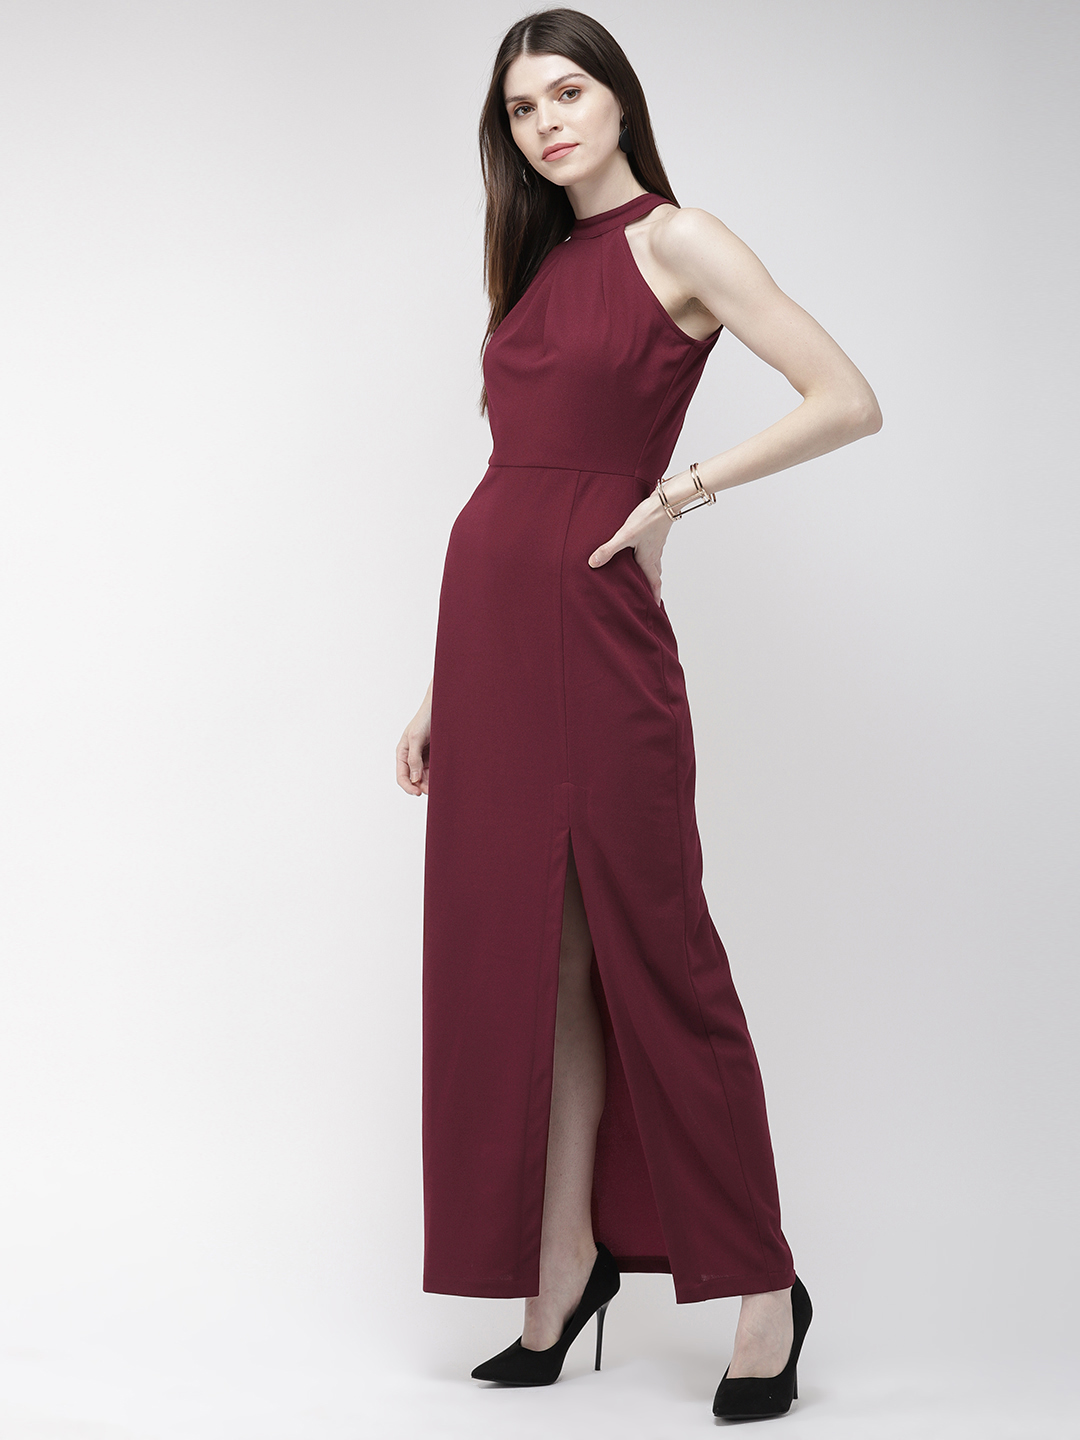 Dresses-You Are Still The One Slit Maxi Dress3